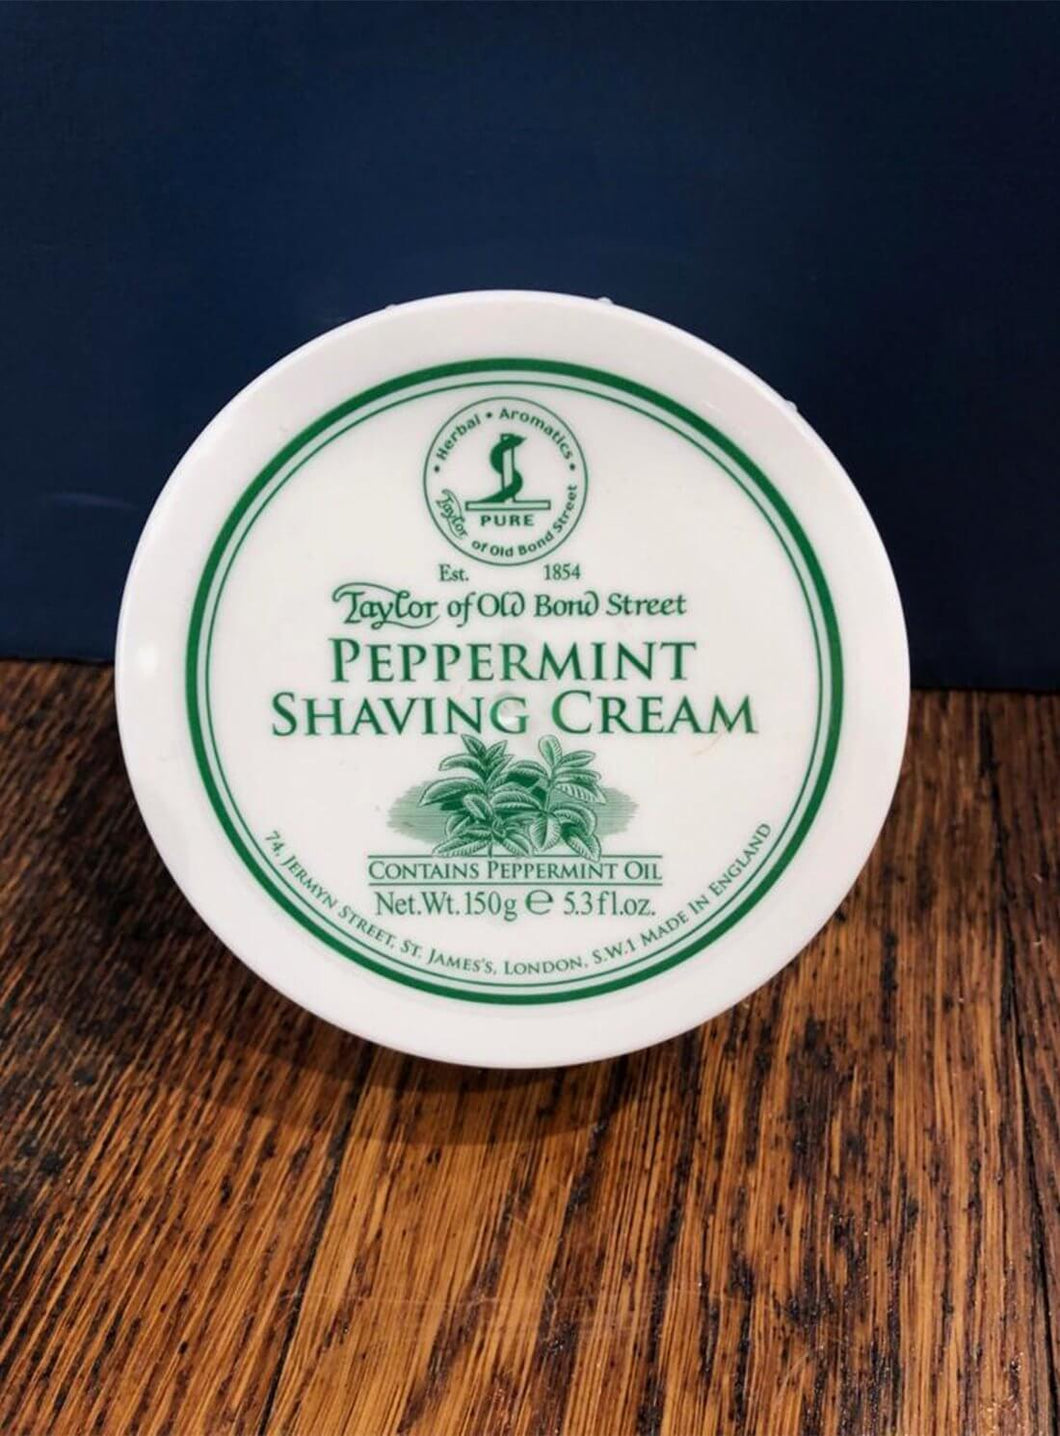 Peppermint Shaving Cream